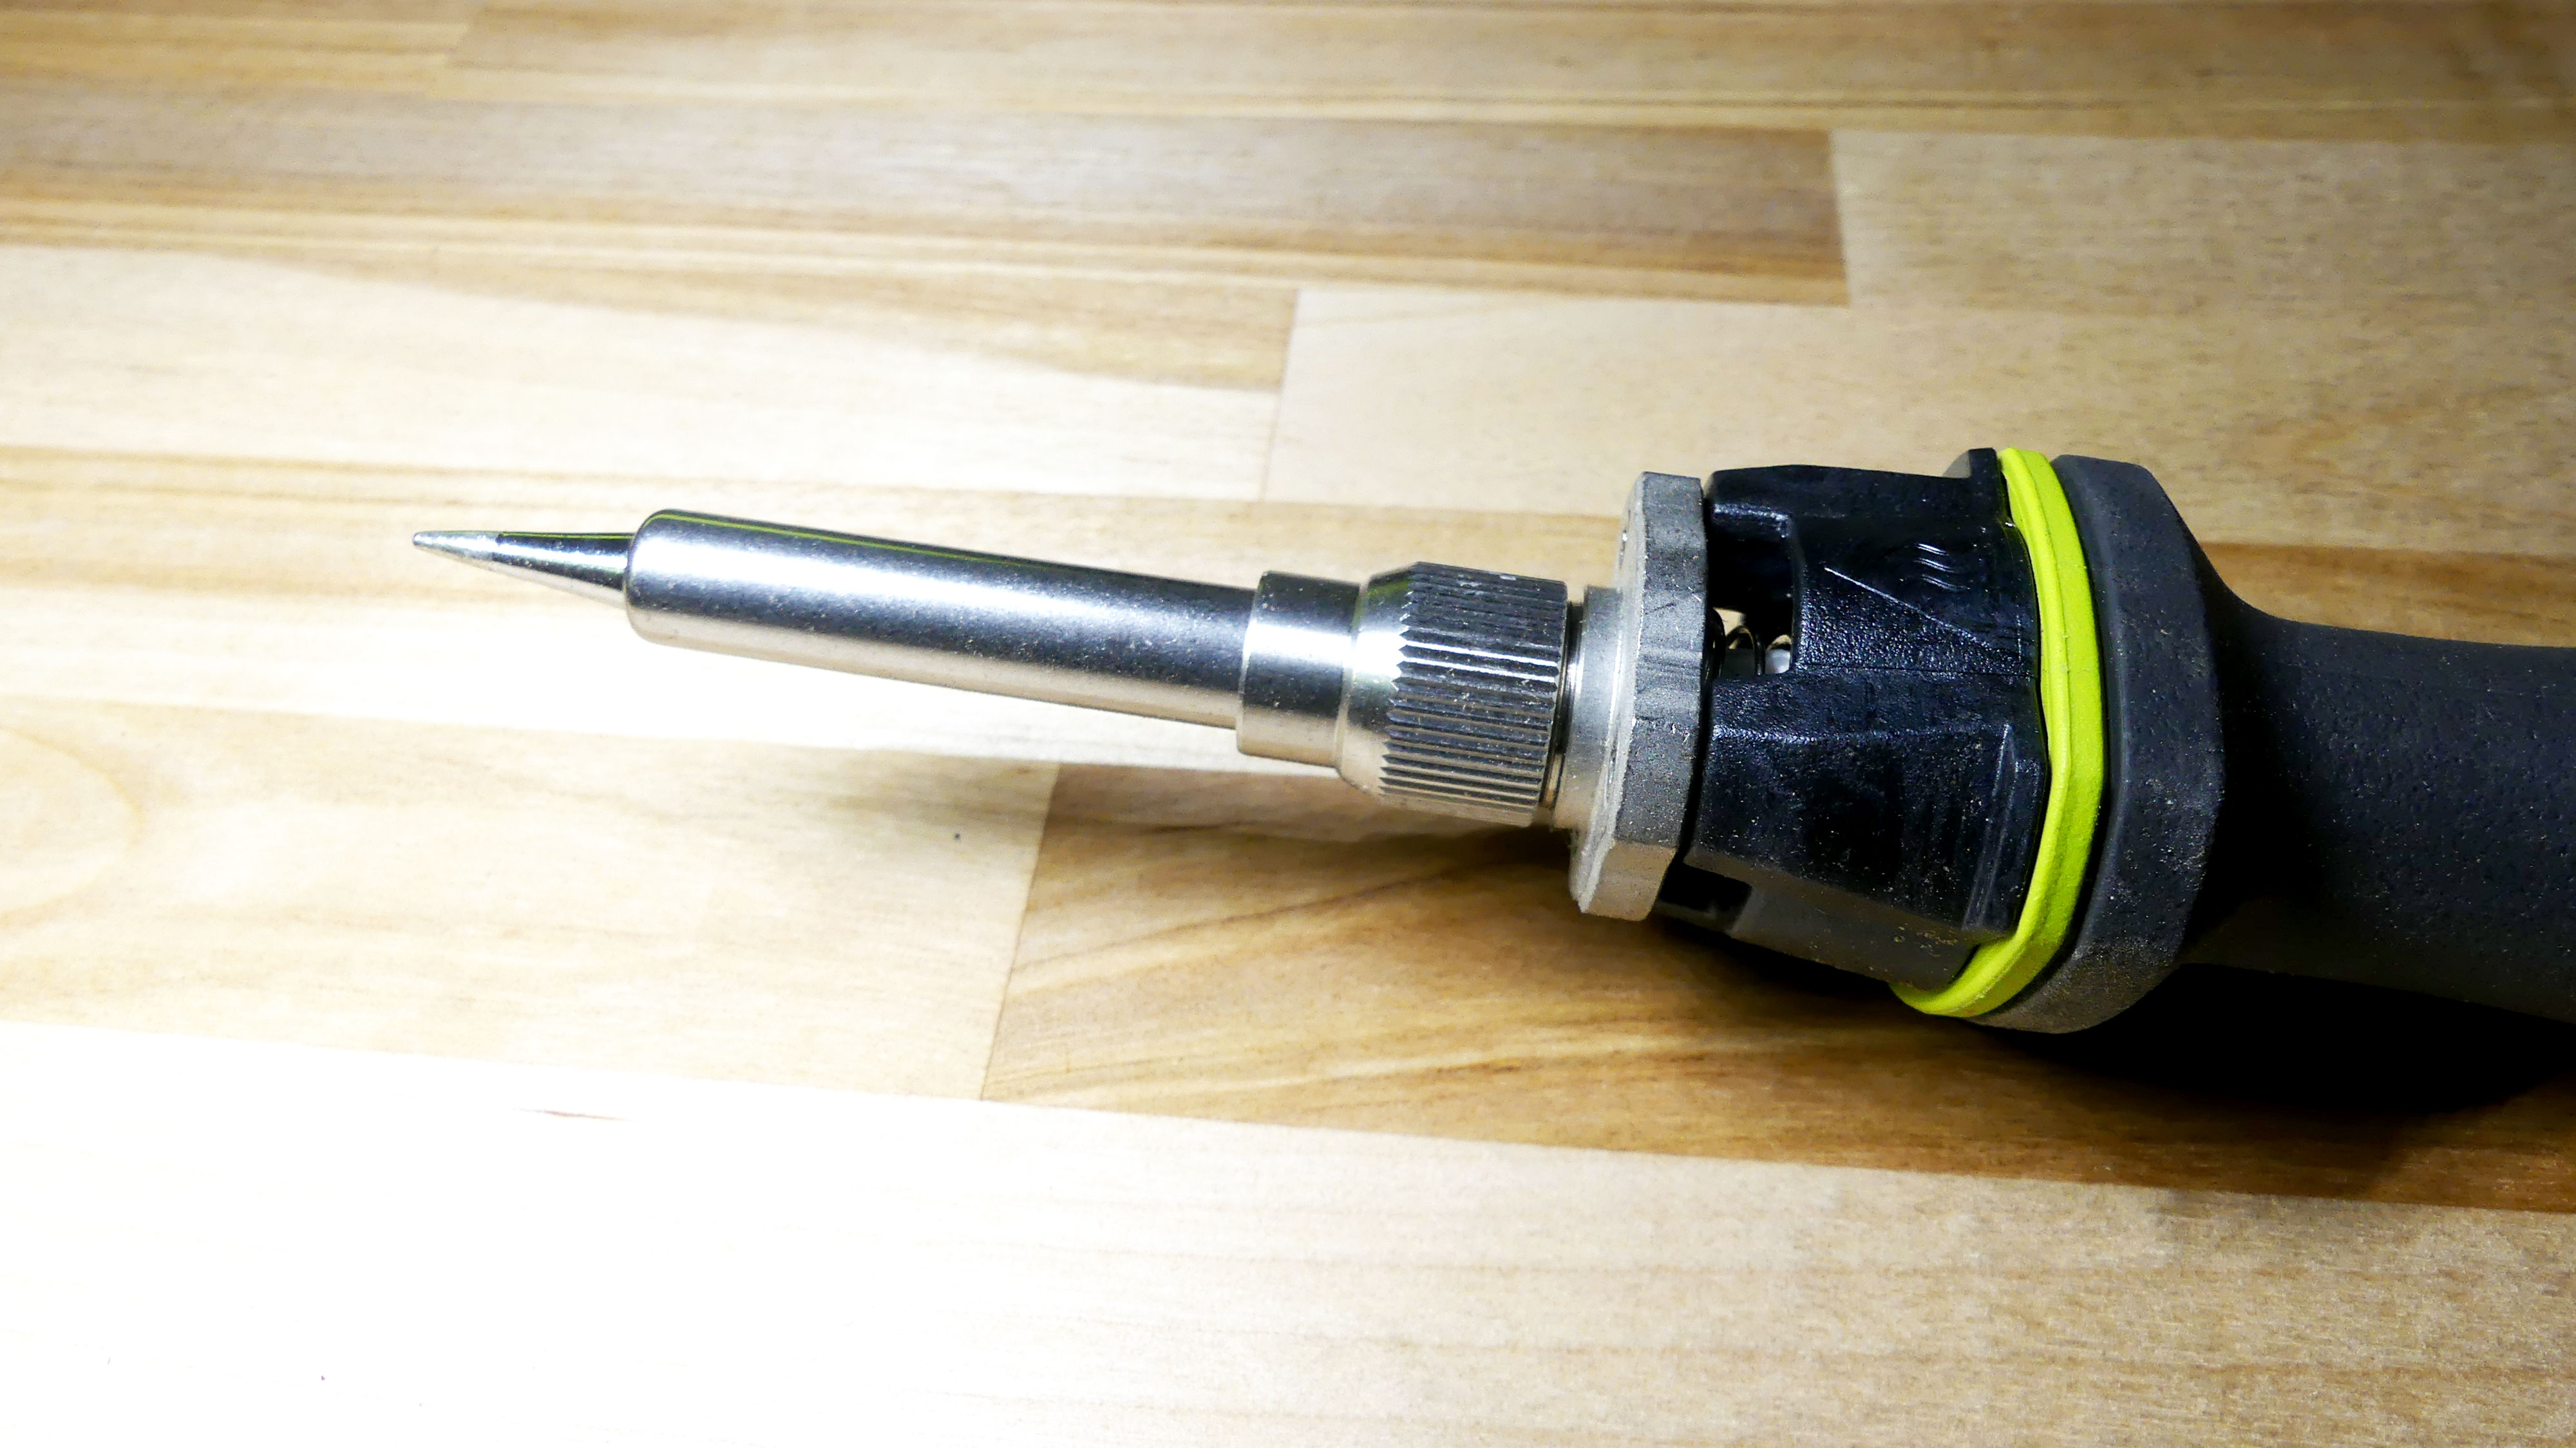 Not Your Typical Ryobi Cordless Power Tools